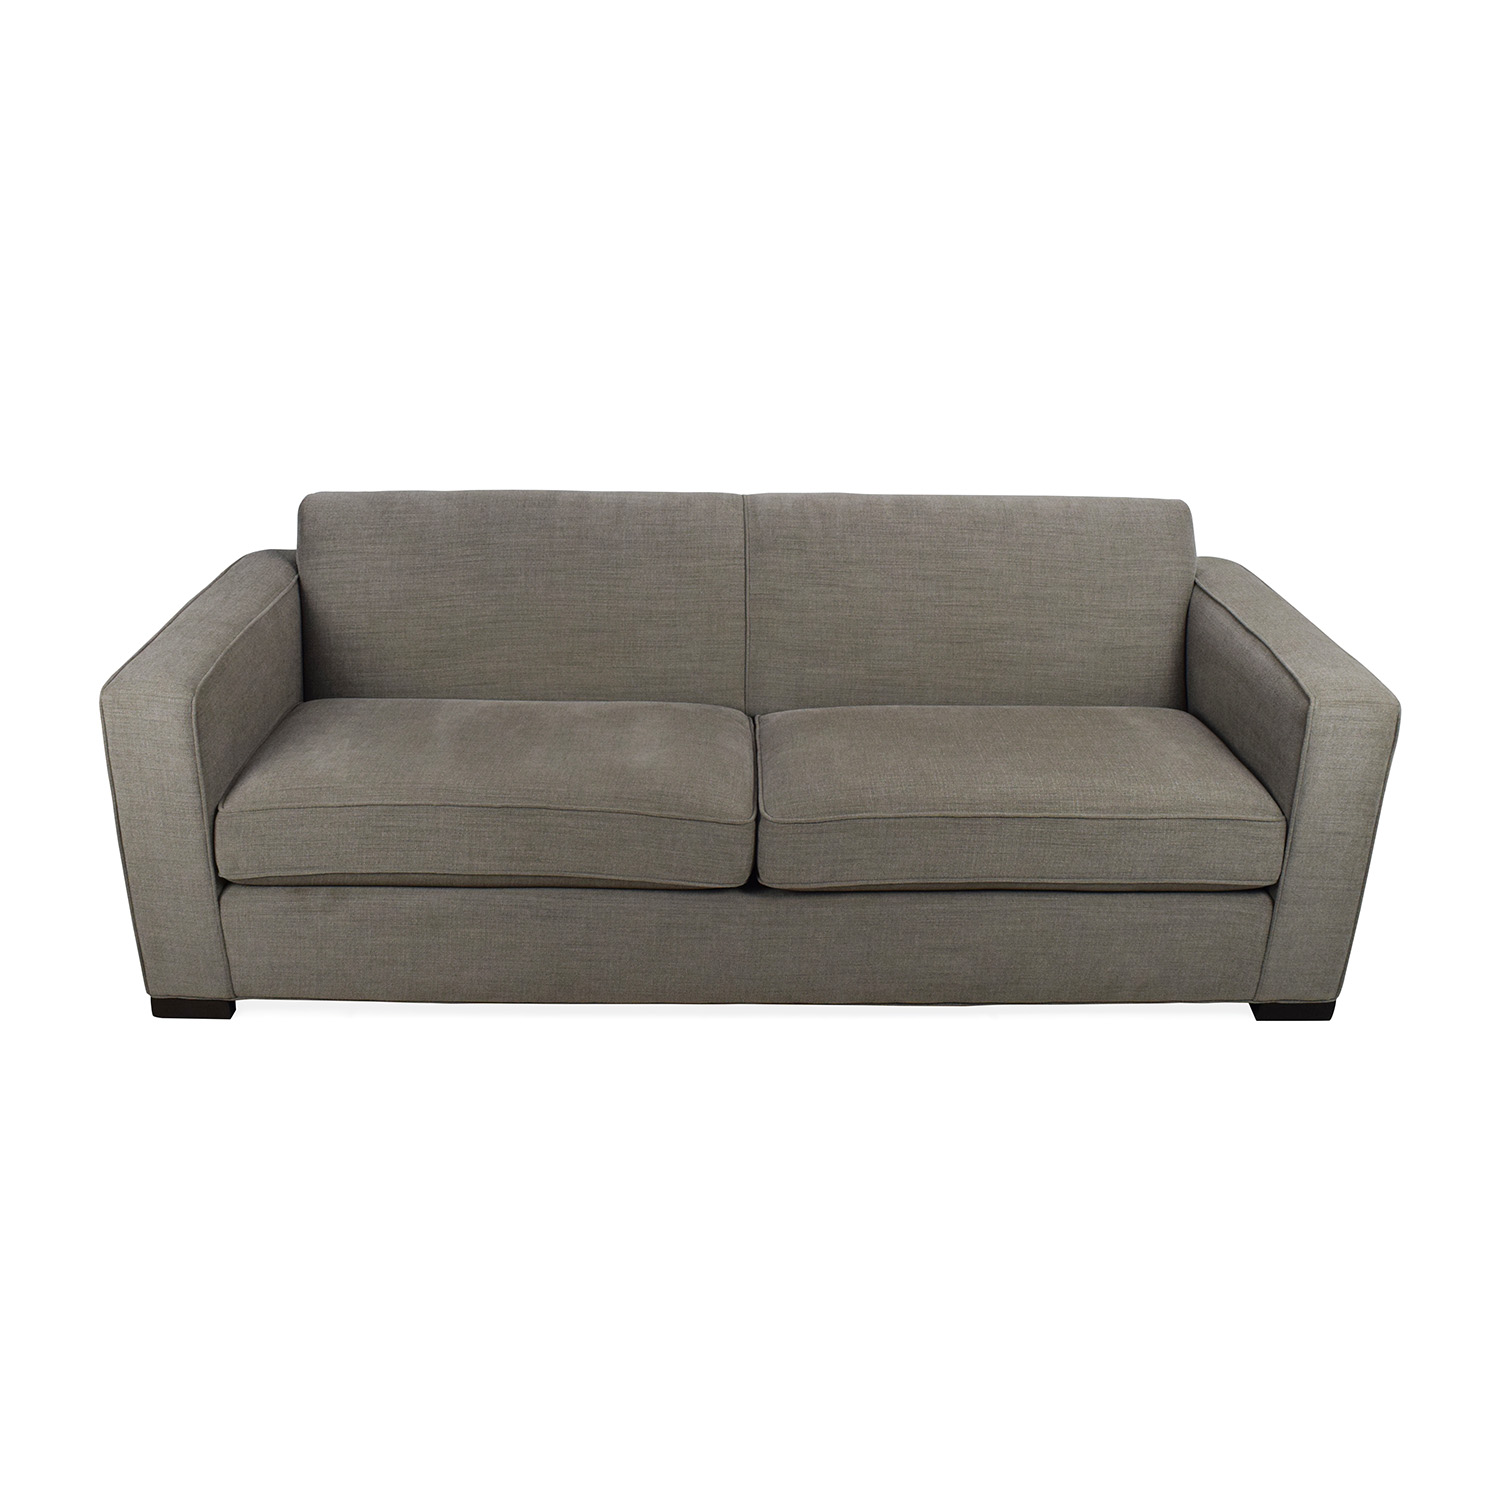 room and board york sofa ethan allen hyde 88 ian christophe delcourt maison d édition thesofa